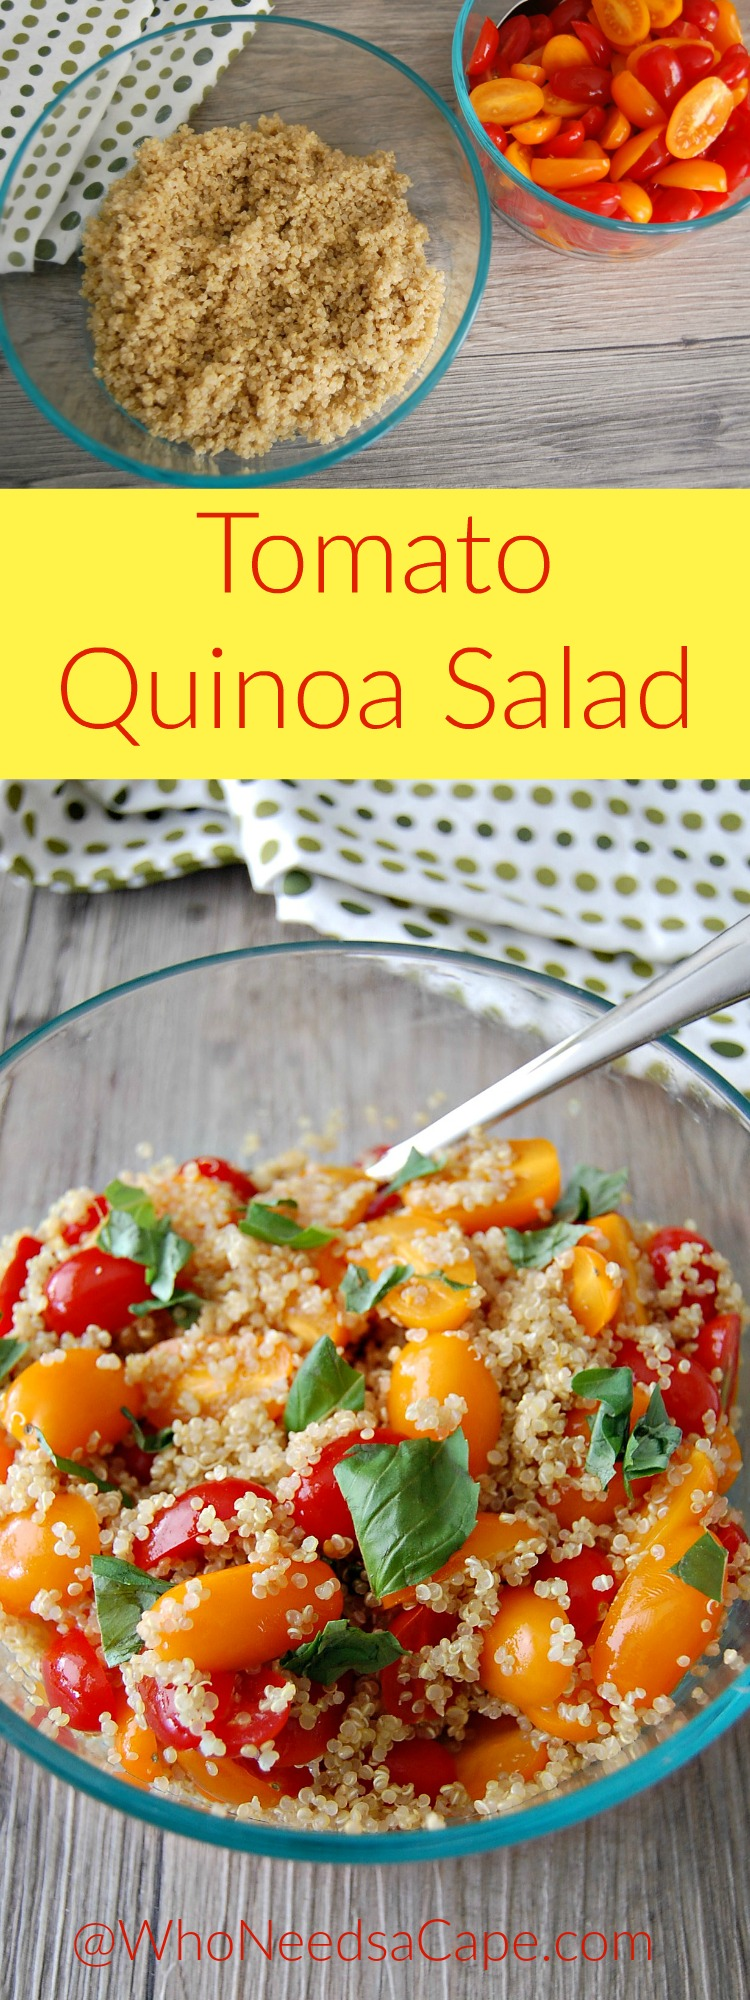 Tomato Quinoa Salad is so good - bonus of being healthy and good for you! Perfect Summer side dish